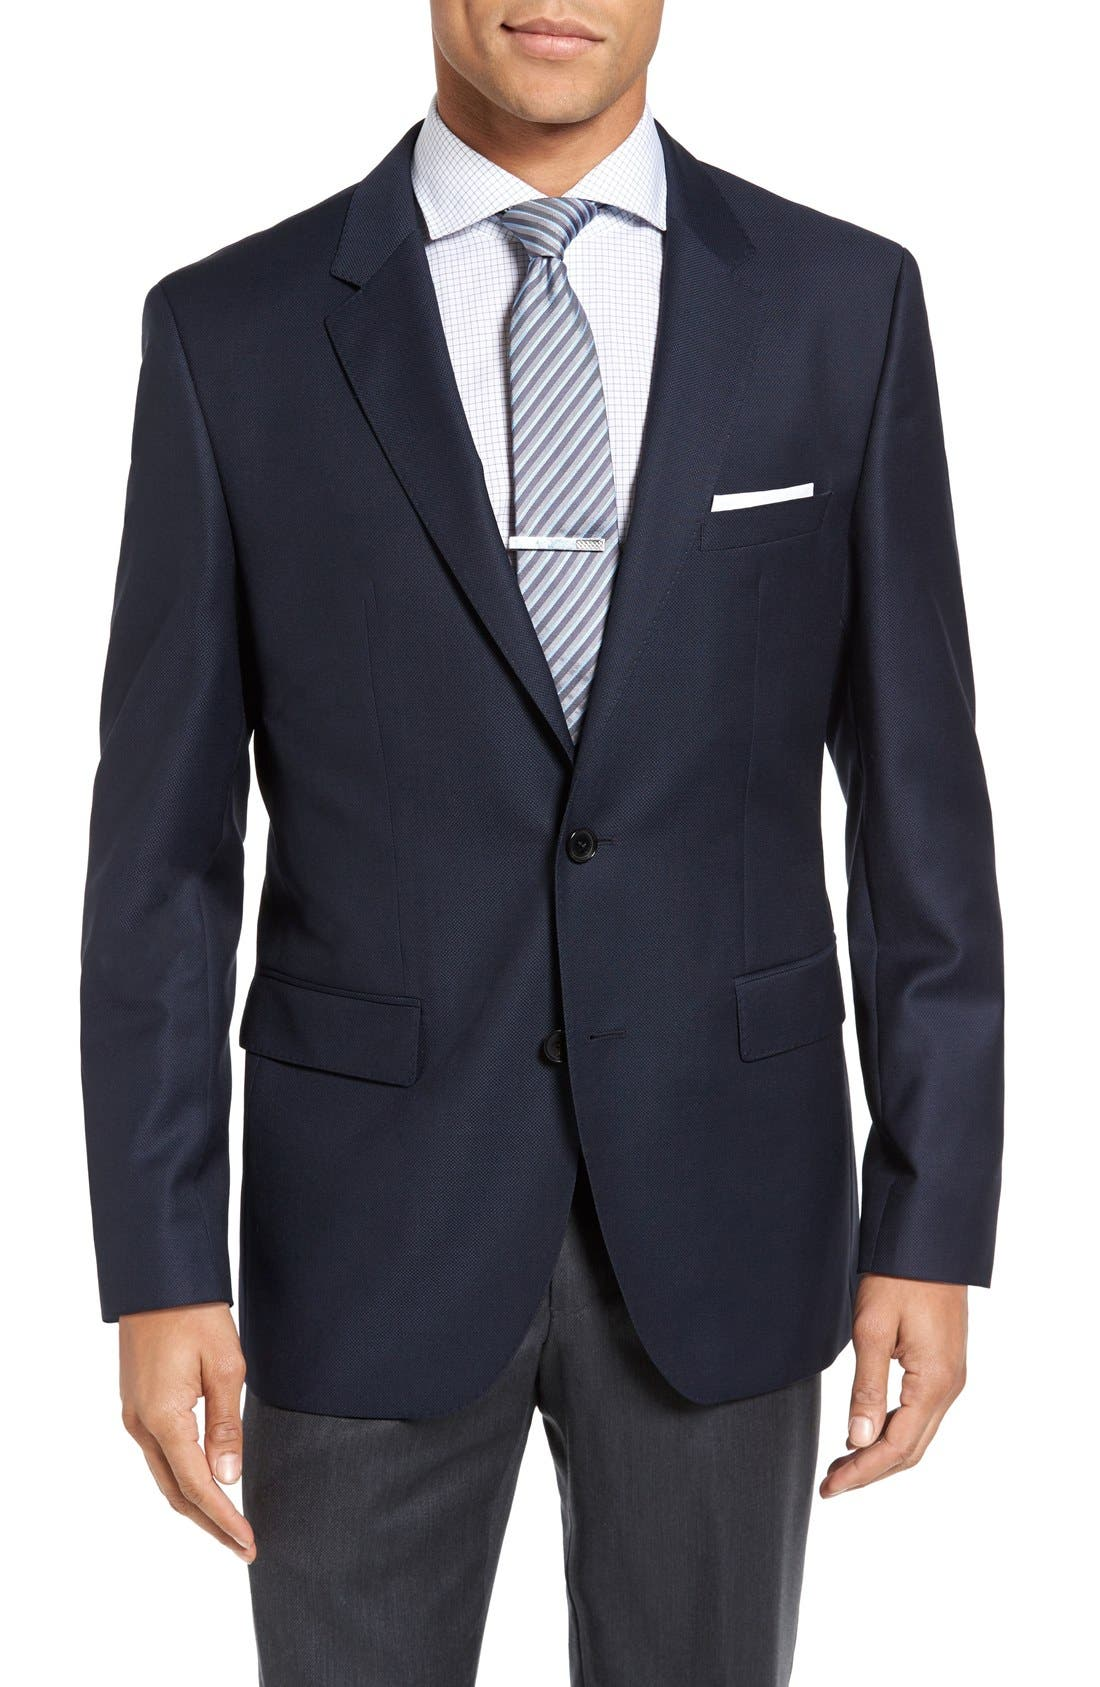 James Classic Fit Wool Blazer,                             Main thumbnail 1, color,                             Navy